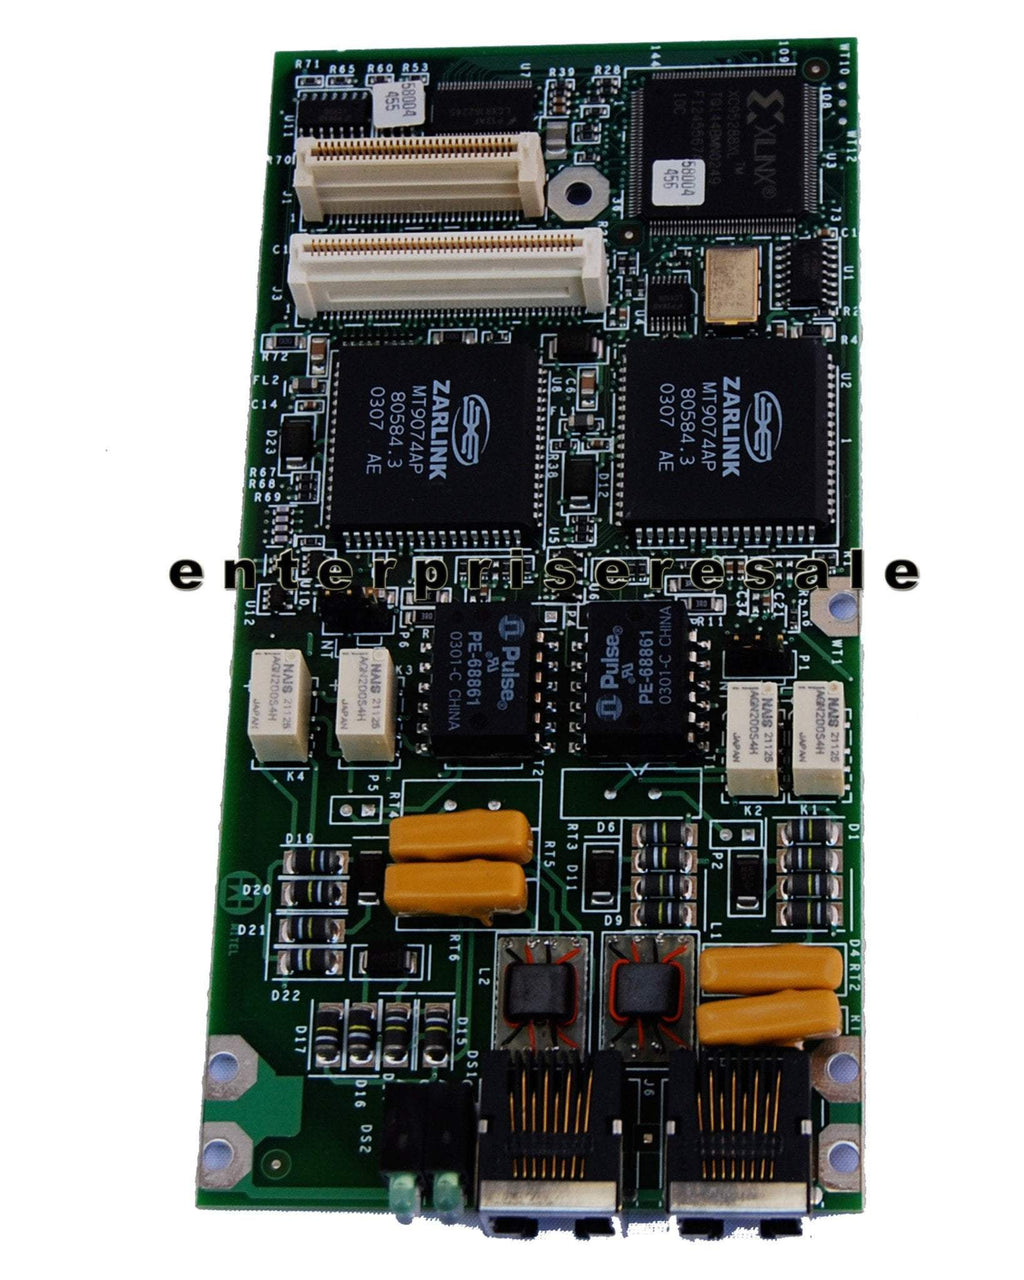 Mitel Phone Switching Systems, PBXs Mitel (9180-510-004-NA) T1/E1 Module Dual Link works with BCCIII PRI